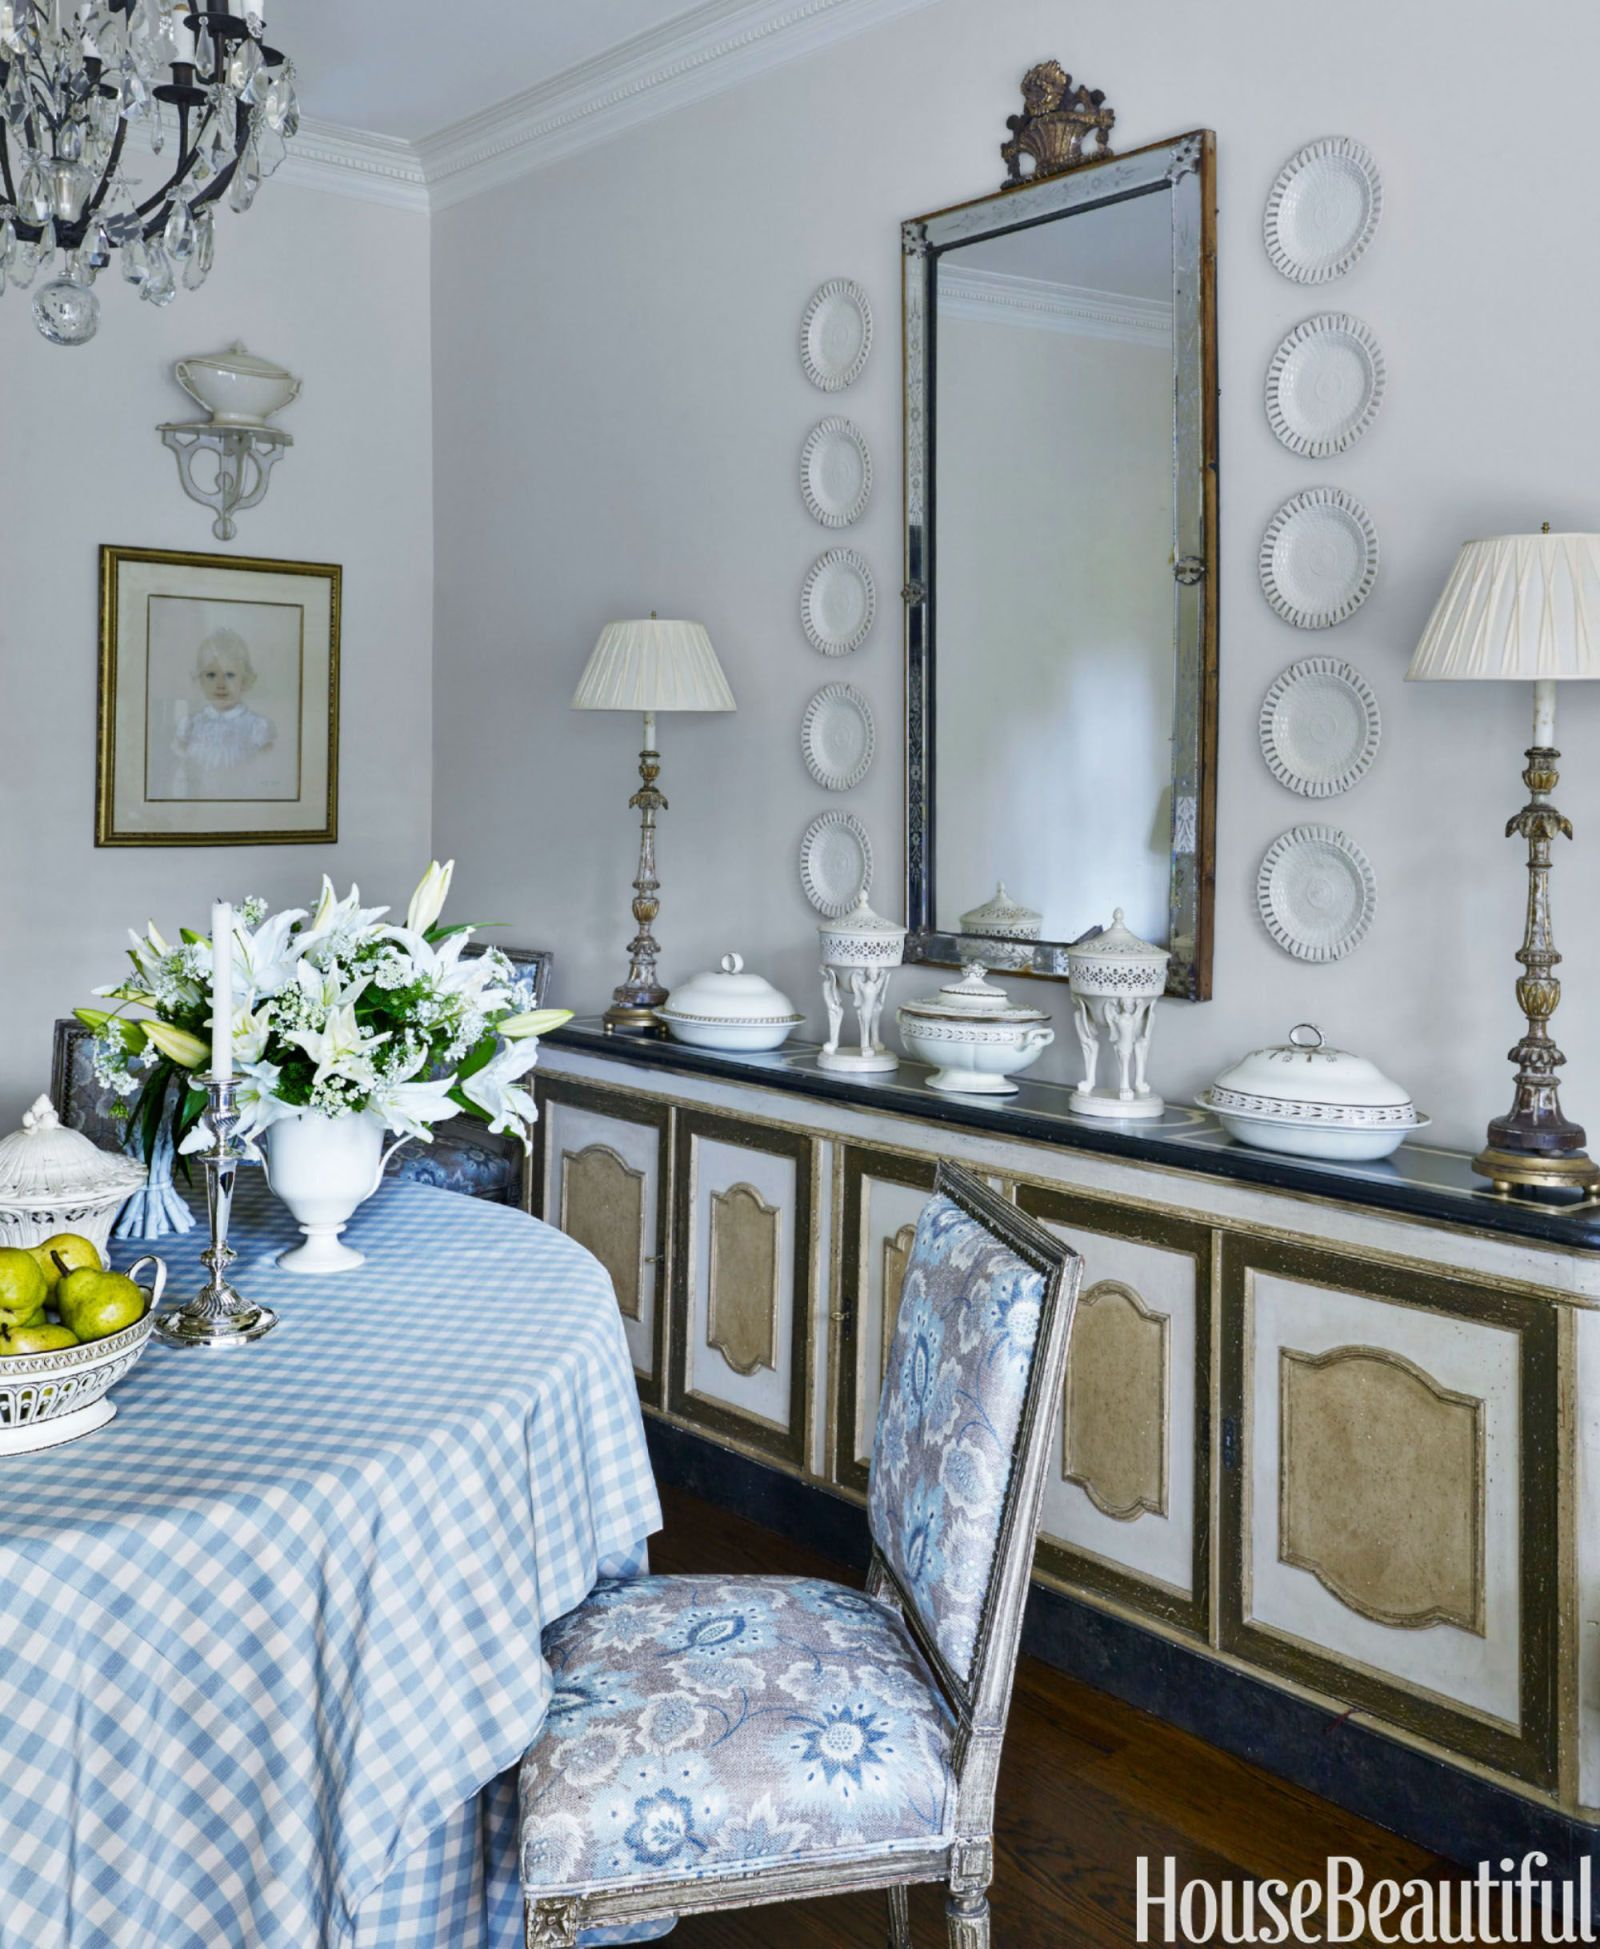 A southern designer finds a bright new home u with help from a